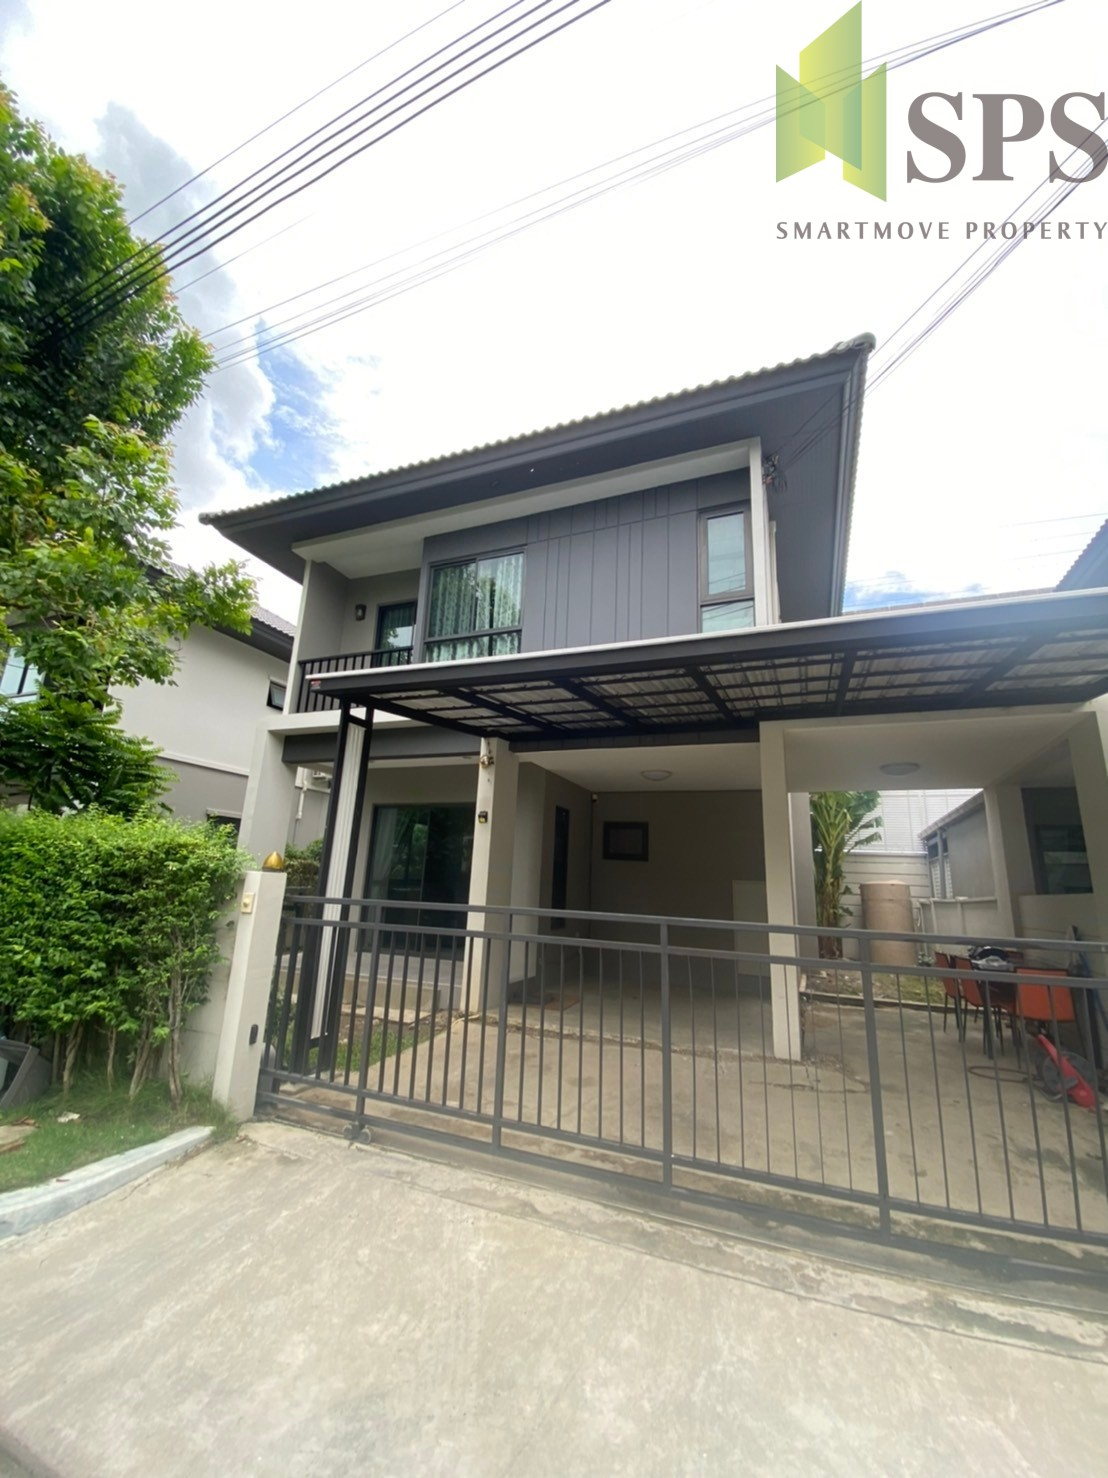 Detached house The Edition พระราม 9 – อ่อนนุช Detached houseBaan Klang Muang The Edition Rama 9 – On Nut (SPS-GH1154)